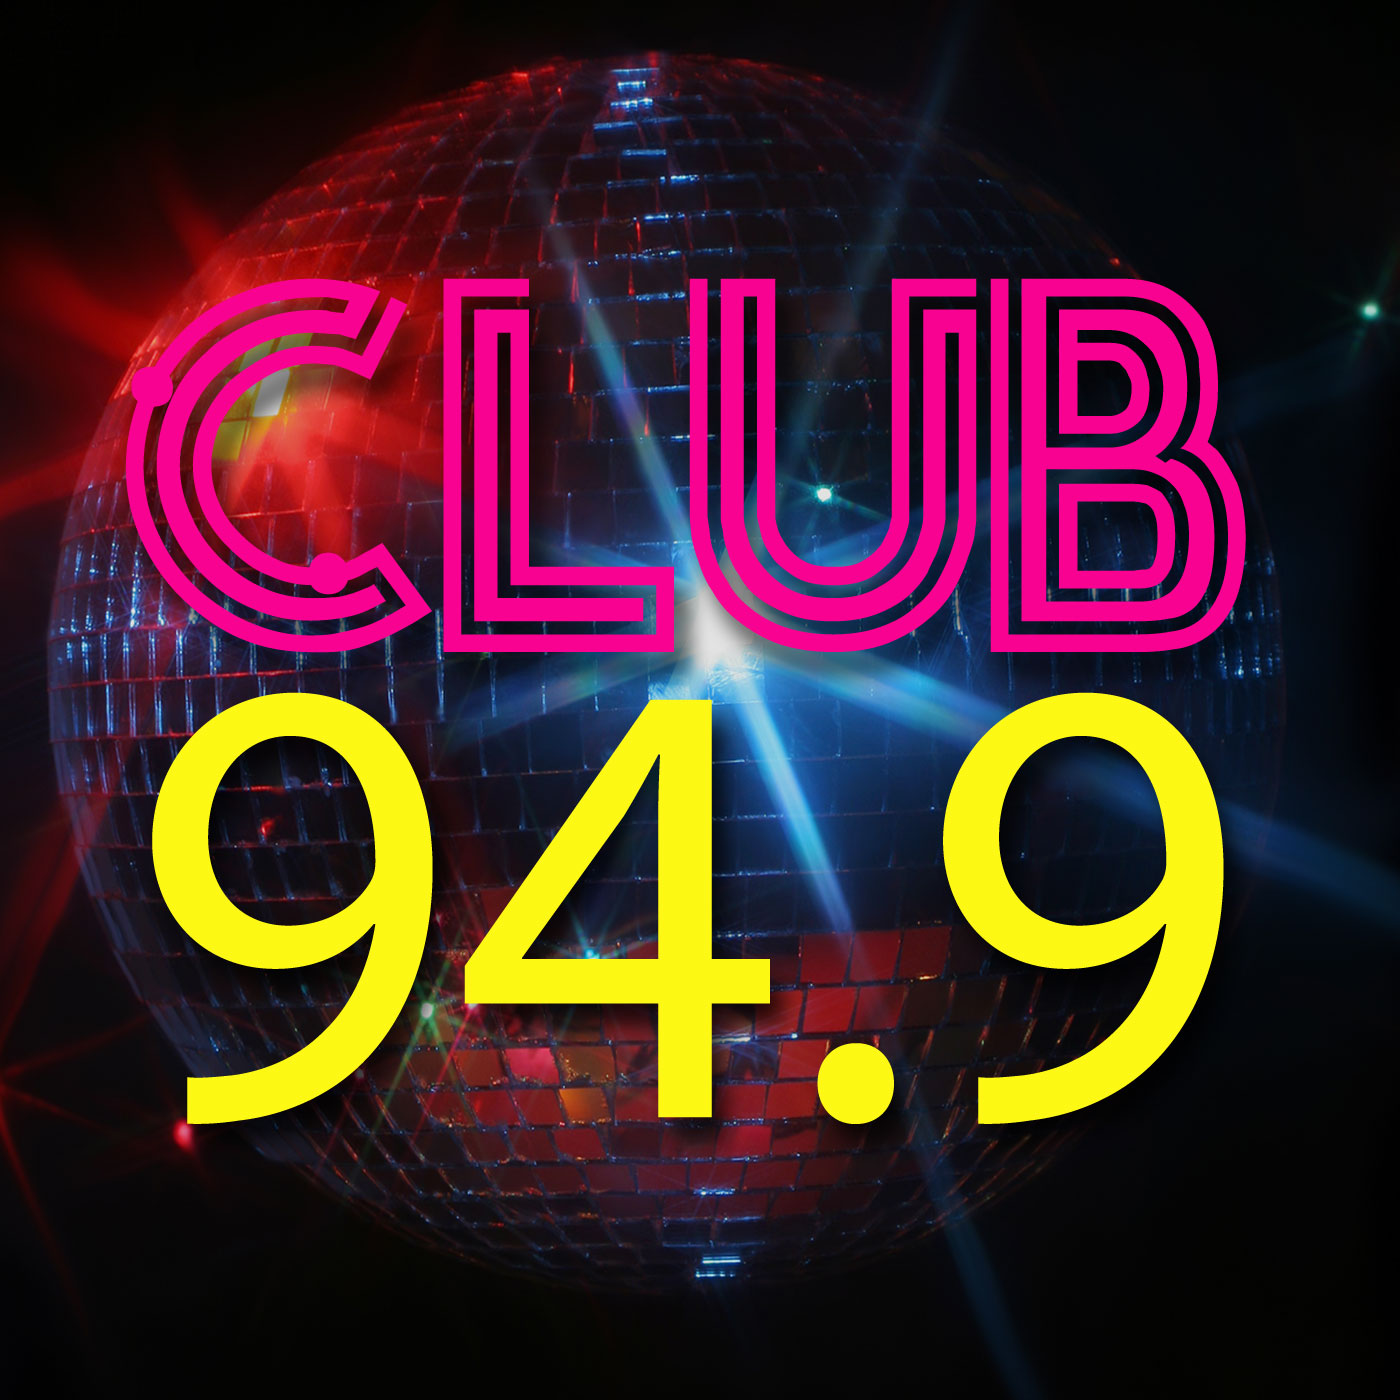 Club 94.9 on Wild 94.9 SF - djkue.net